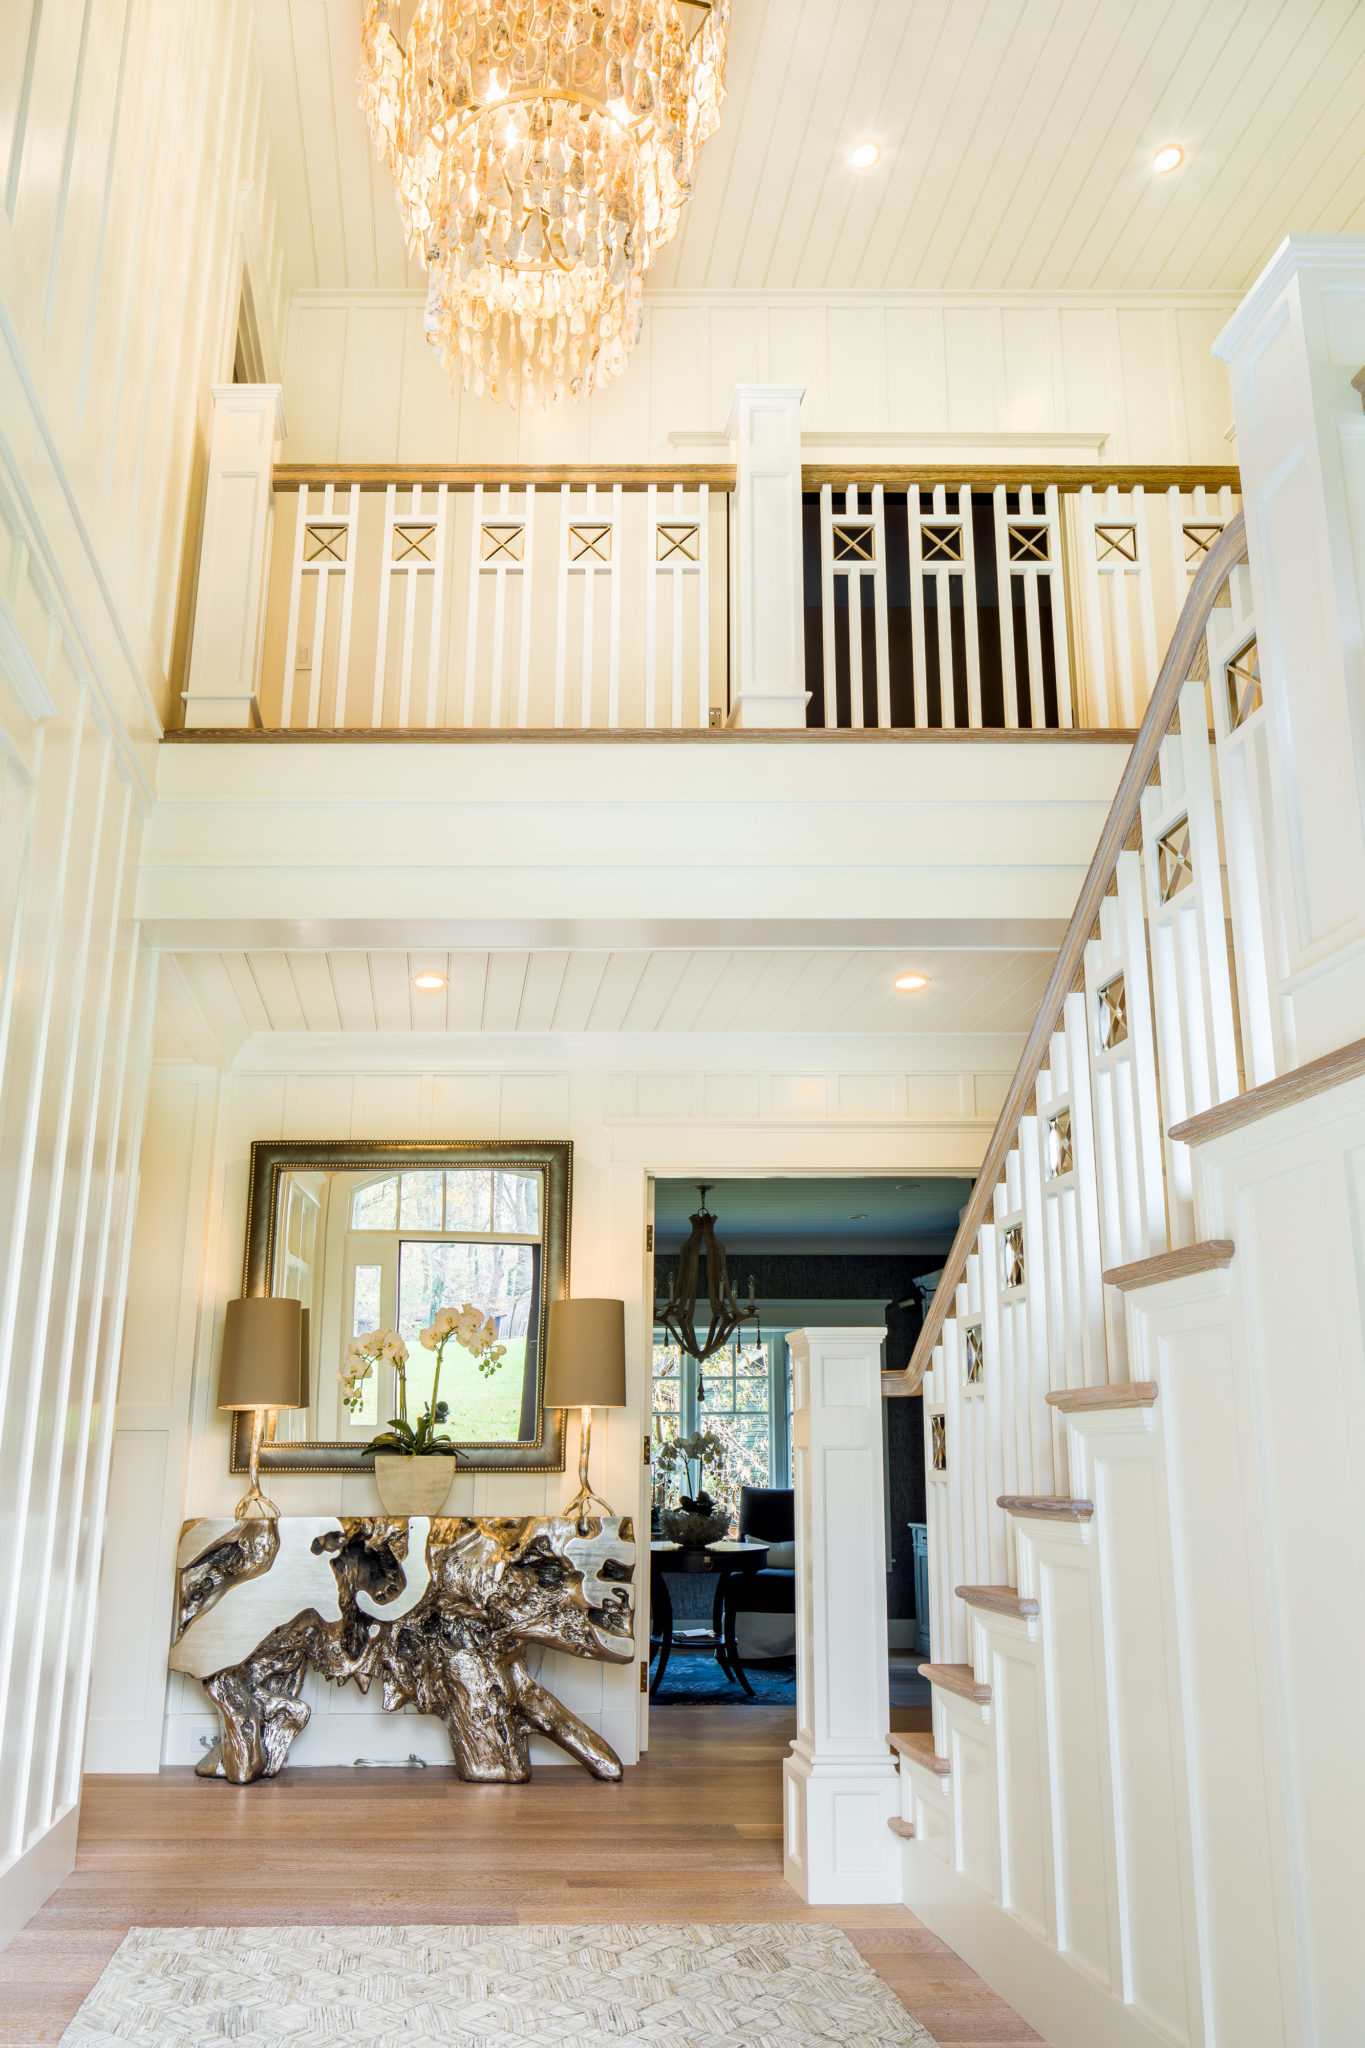 Annapolis. MD Residence - Architectural Design Studios 2